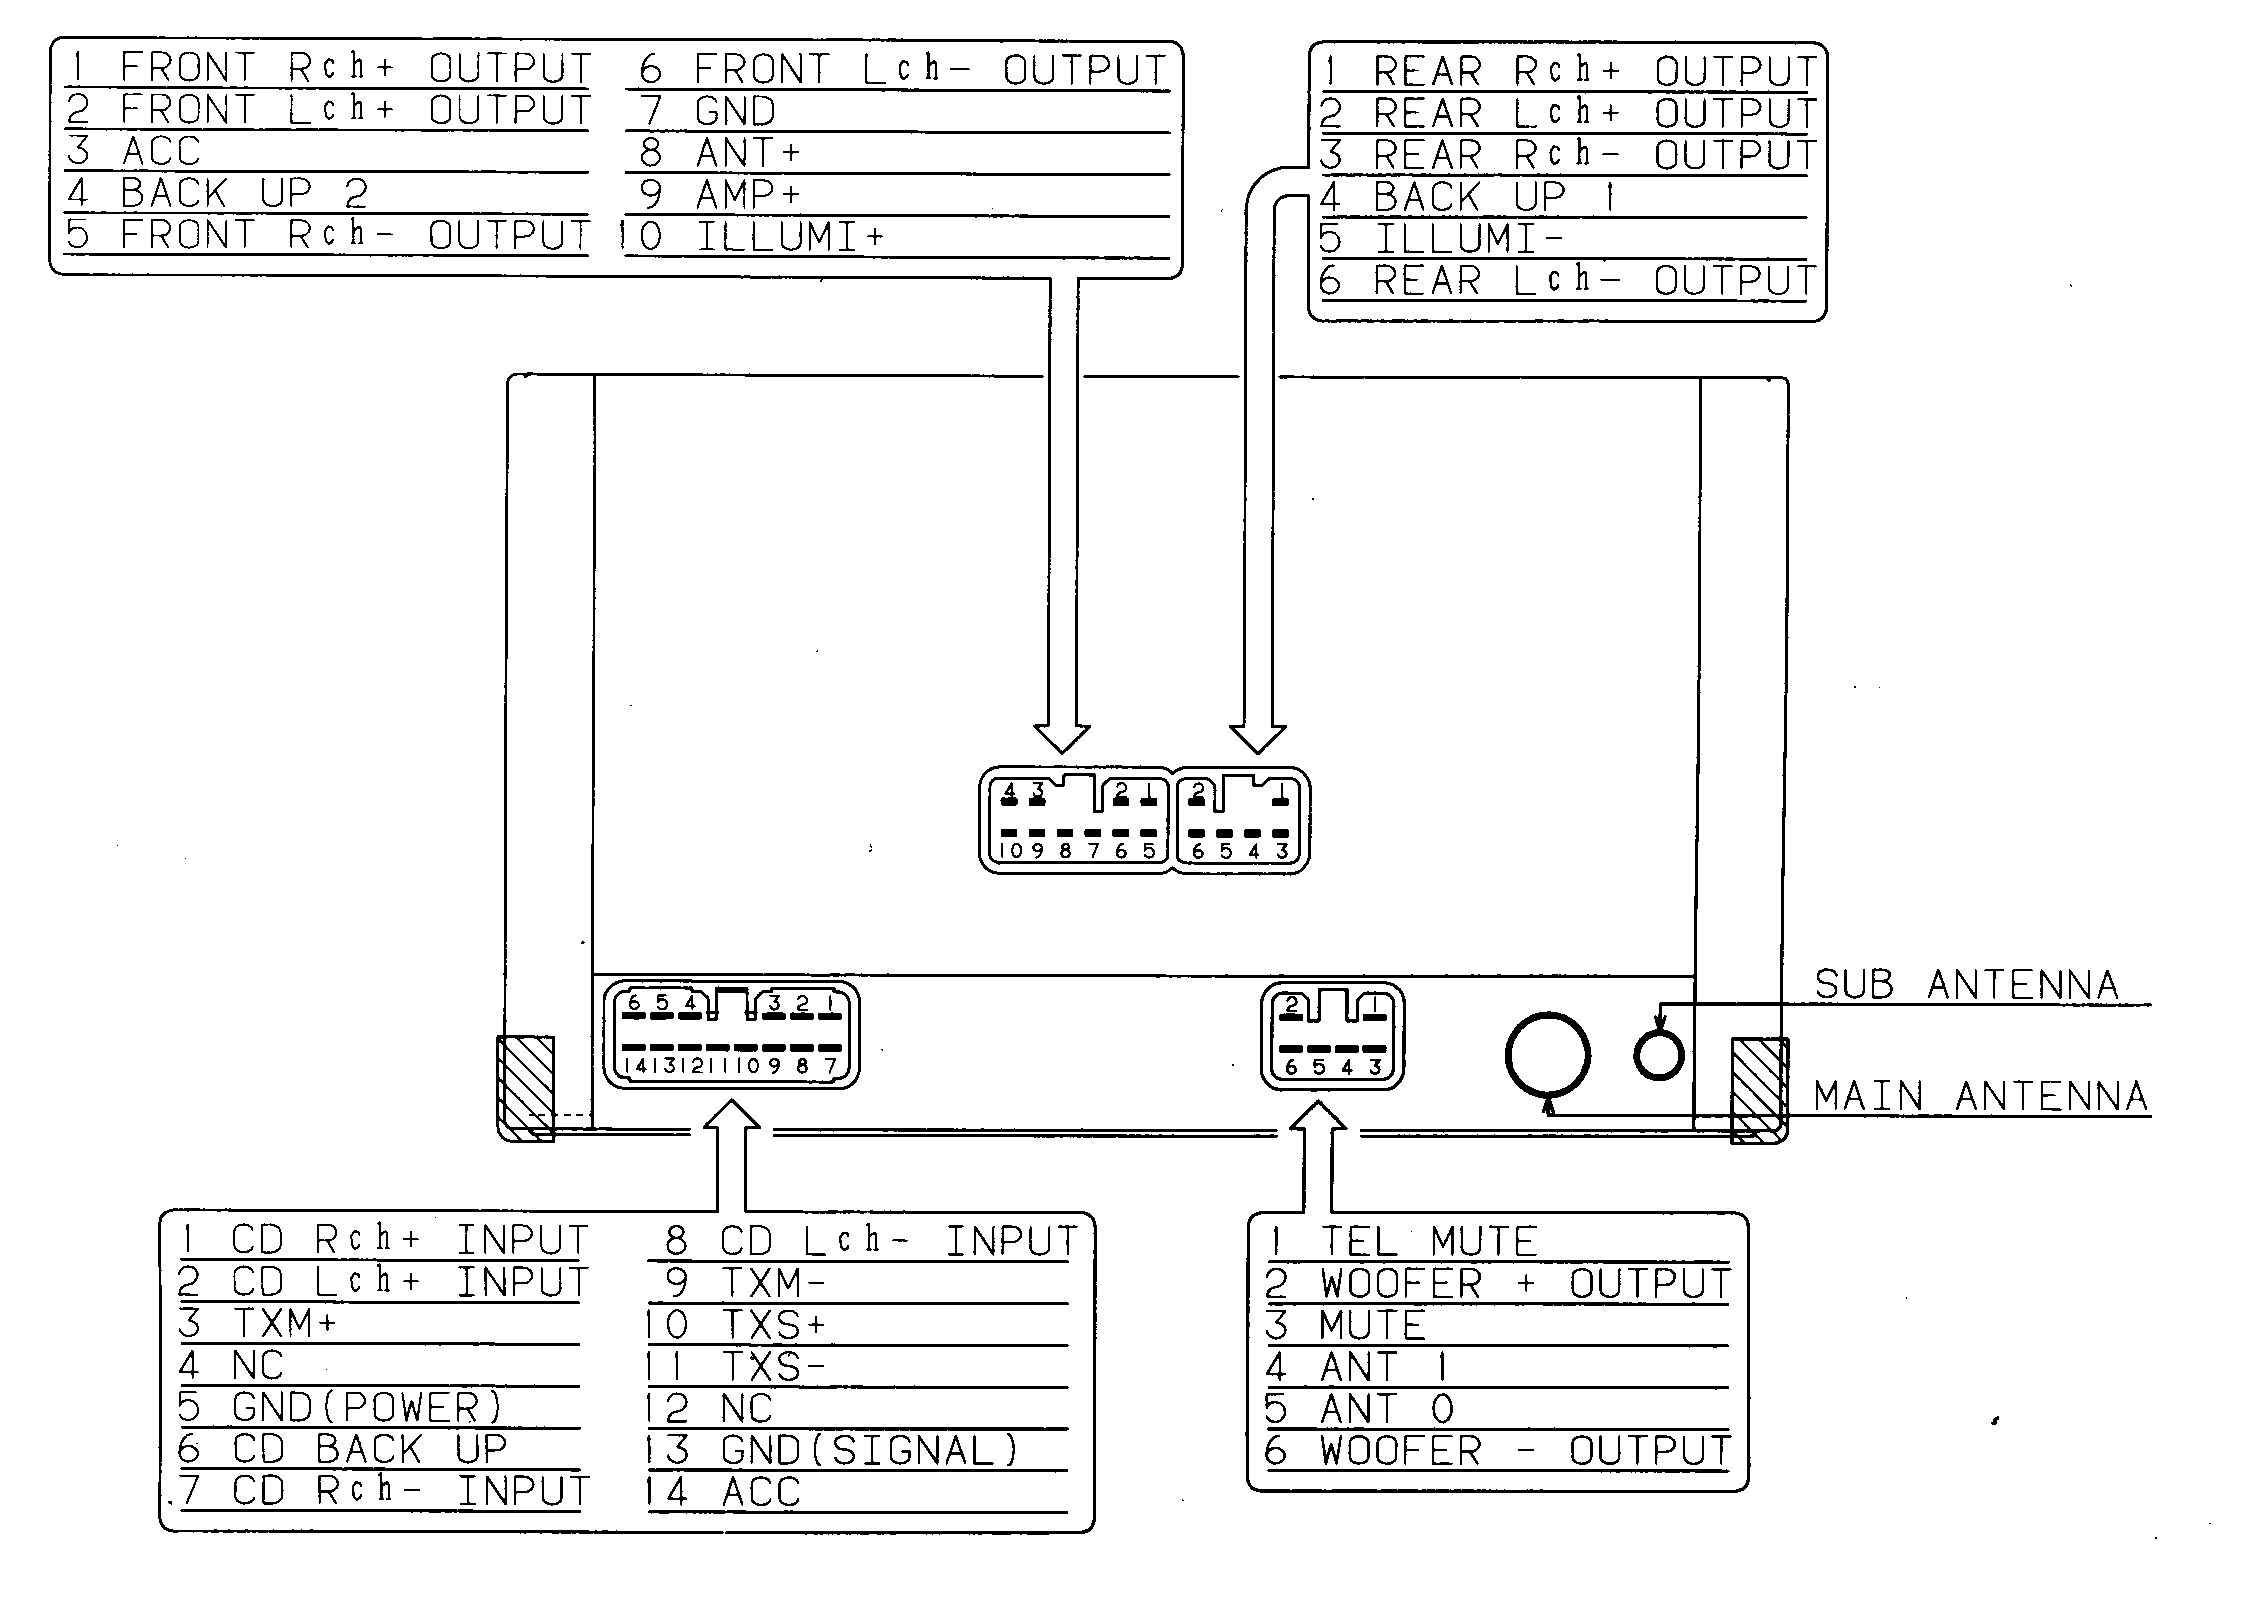 WireHarnessLexus121001 car audio wire diagram codes lexus factory car stereo repair 1984 buick lesabre radio wiring diagram at bayanpartner.co